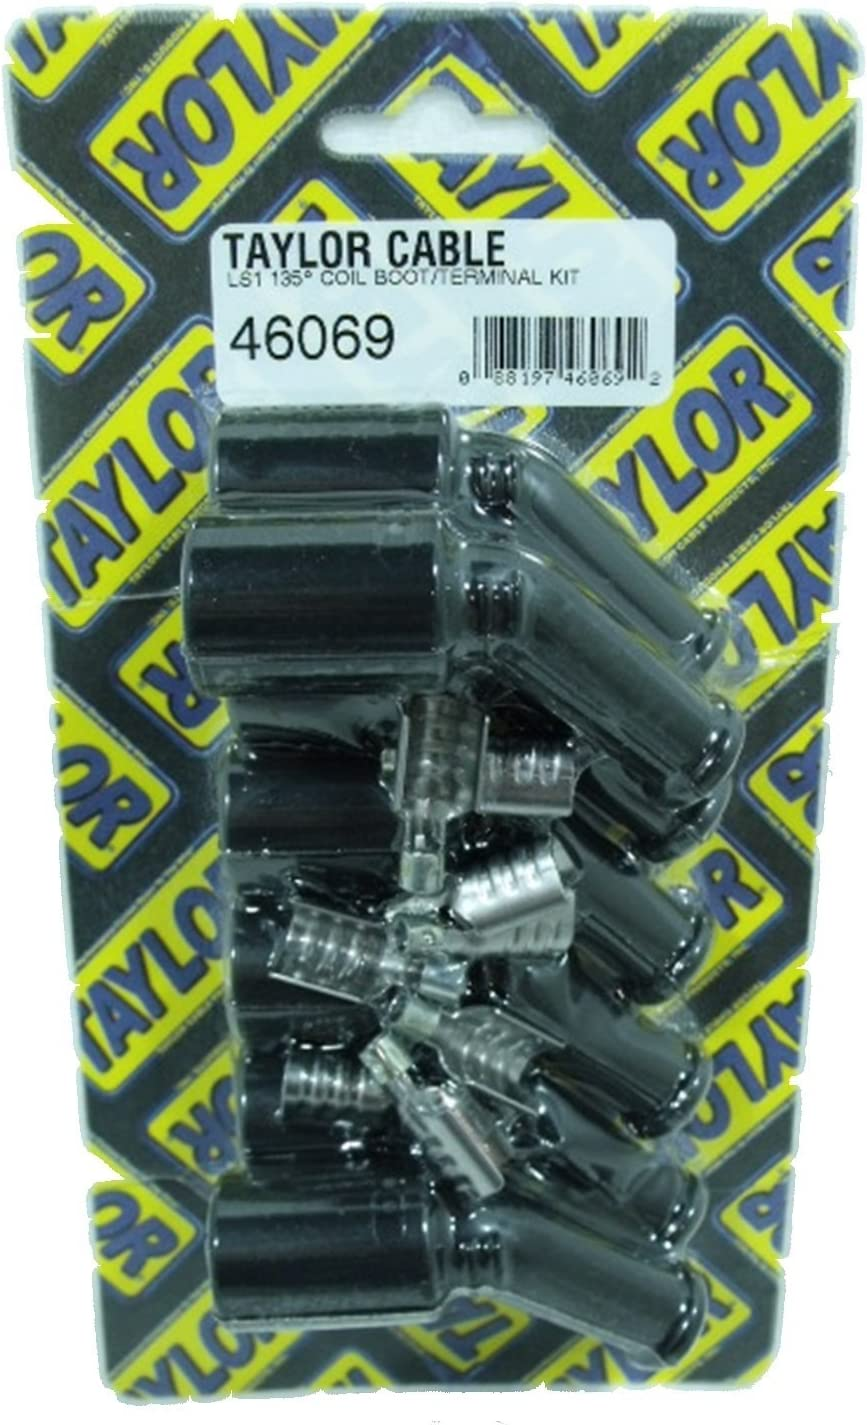 Taylor Cable 46005 Spark Plug Boot And Terminal Kit